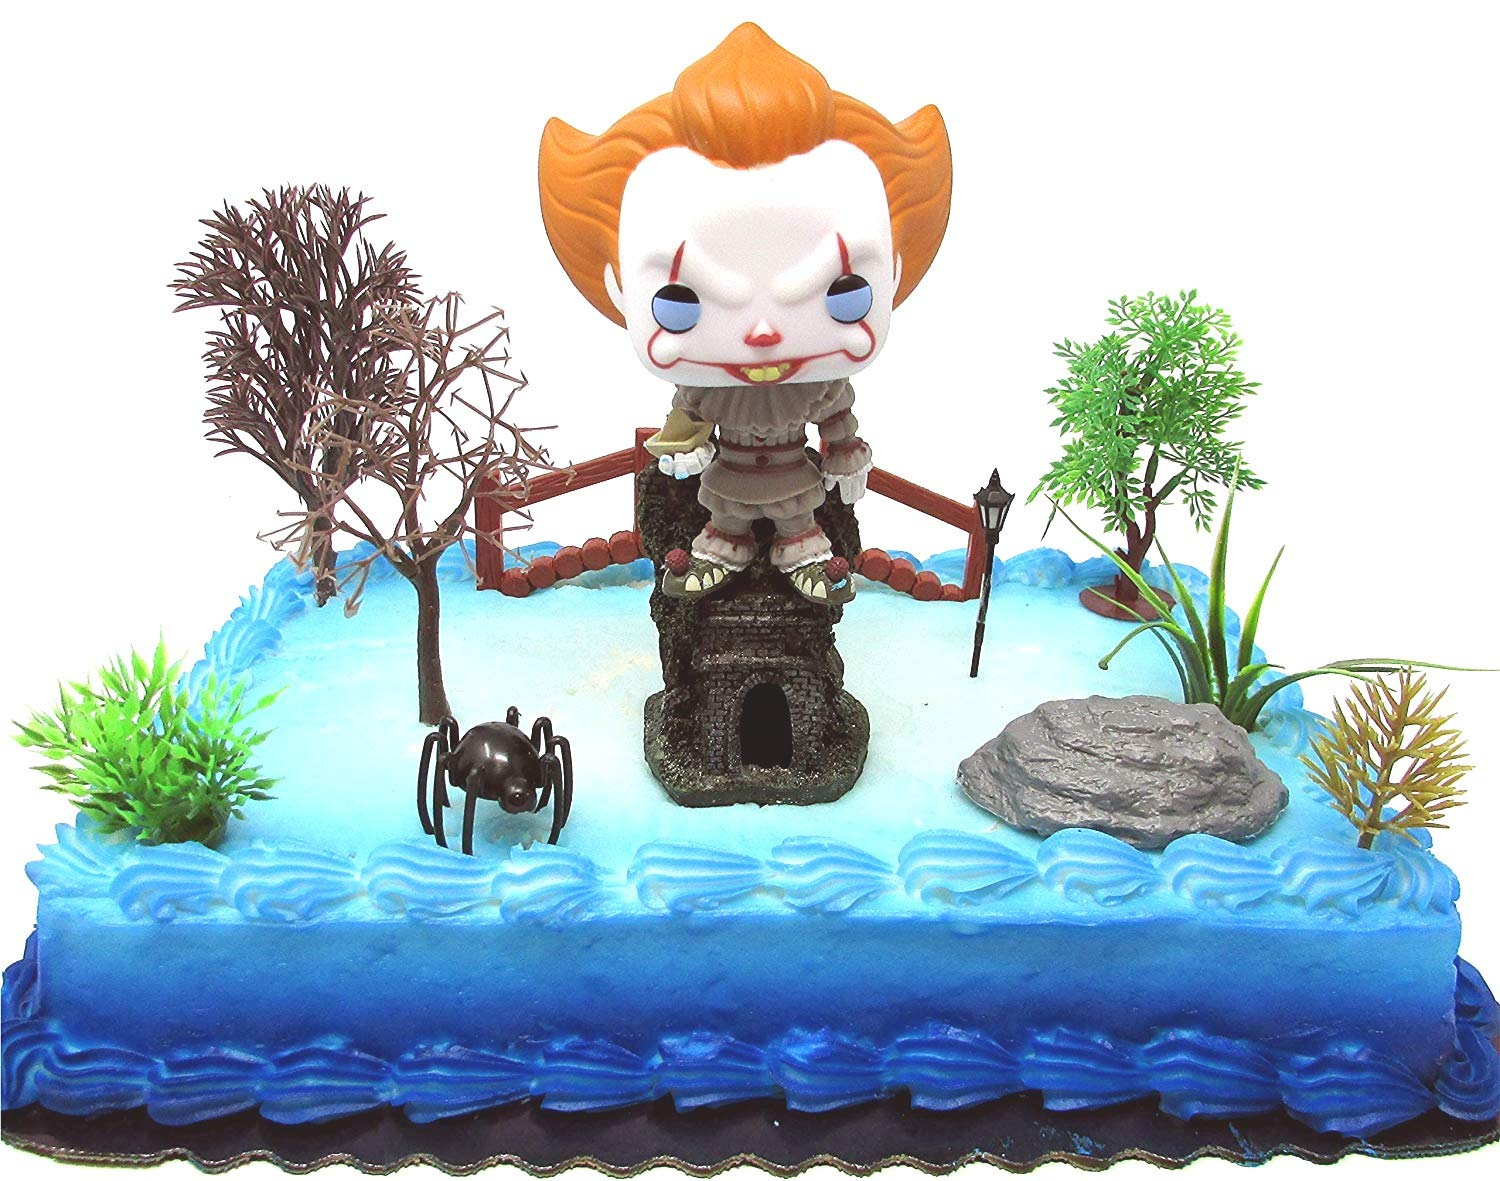 IT Pennywise the Clown Birthday Cake Topper Set Featuring Pennywise and Decorative Themed Accessories